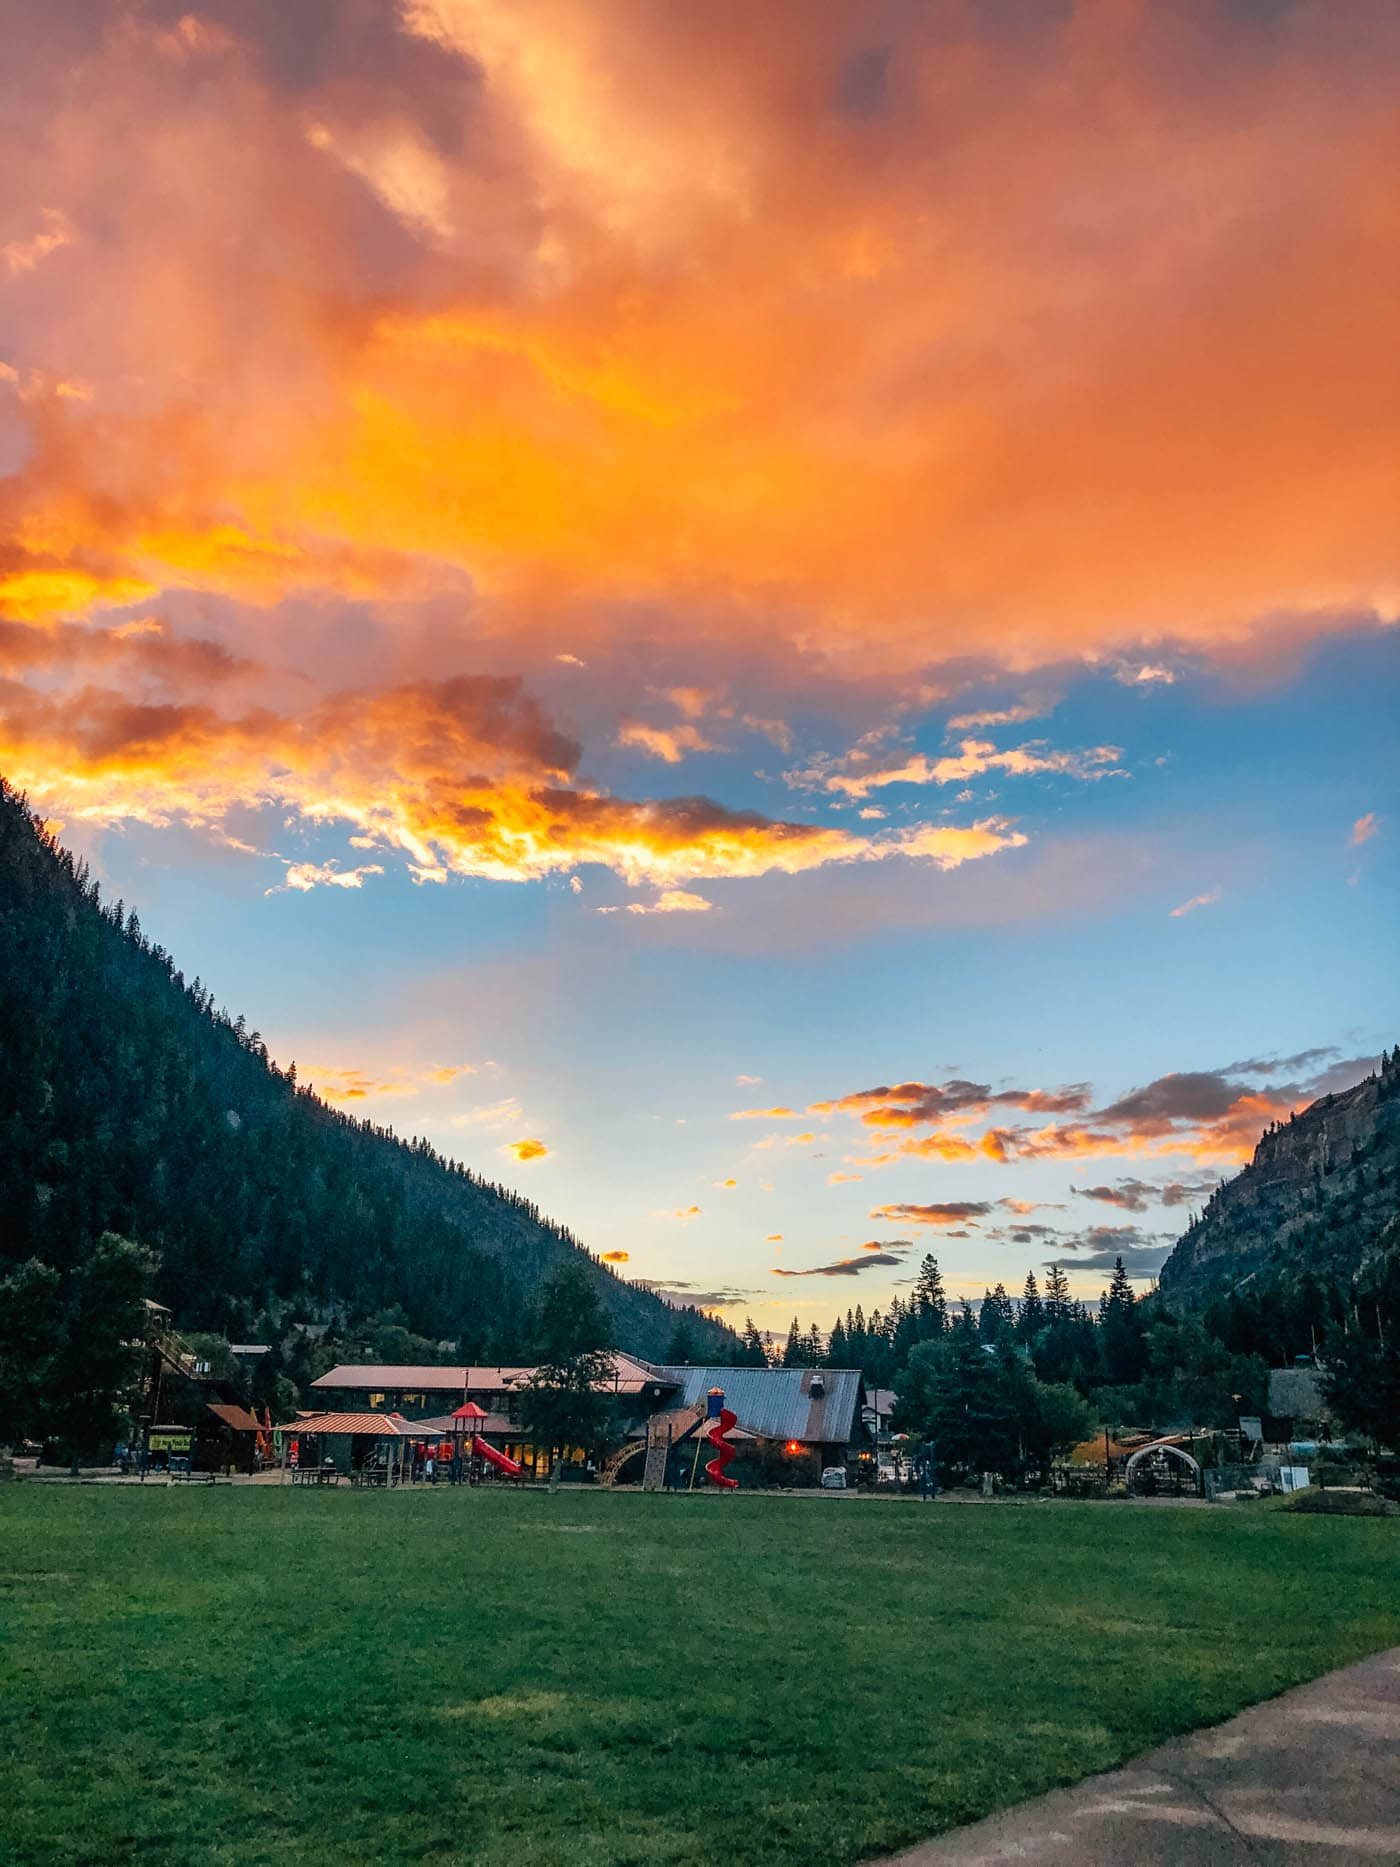 Sunset at Town Park in Ouray, Colorado